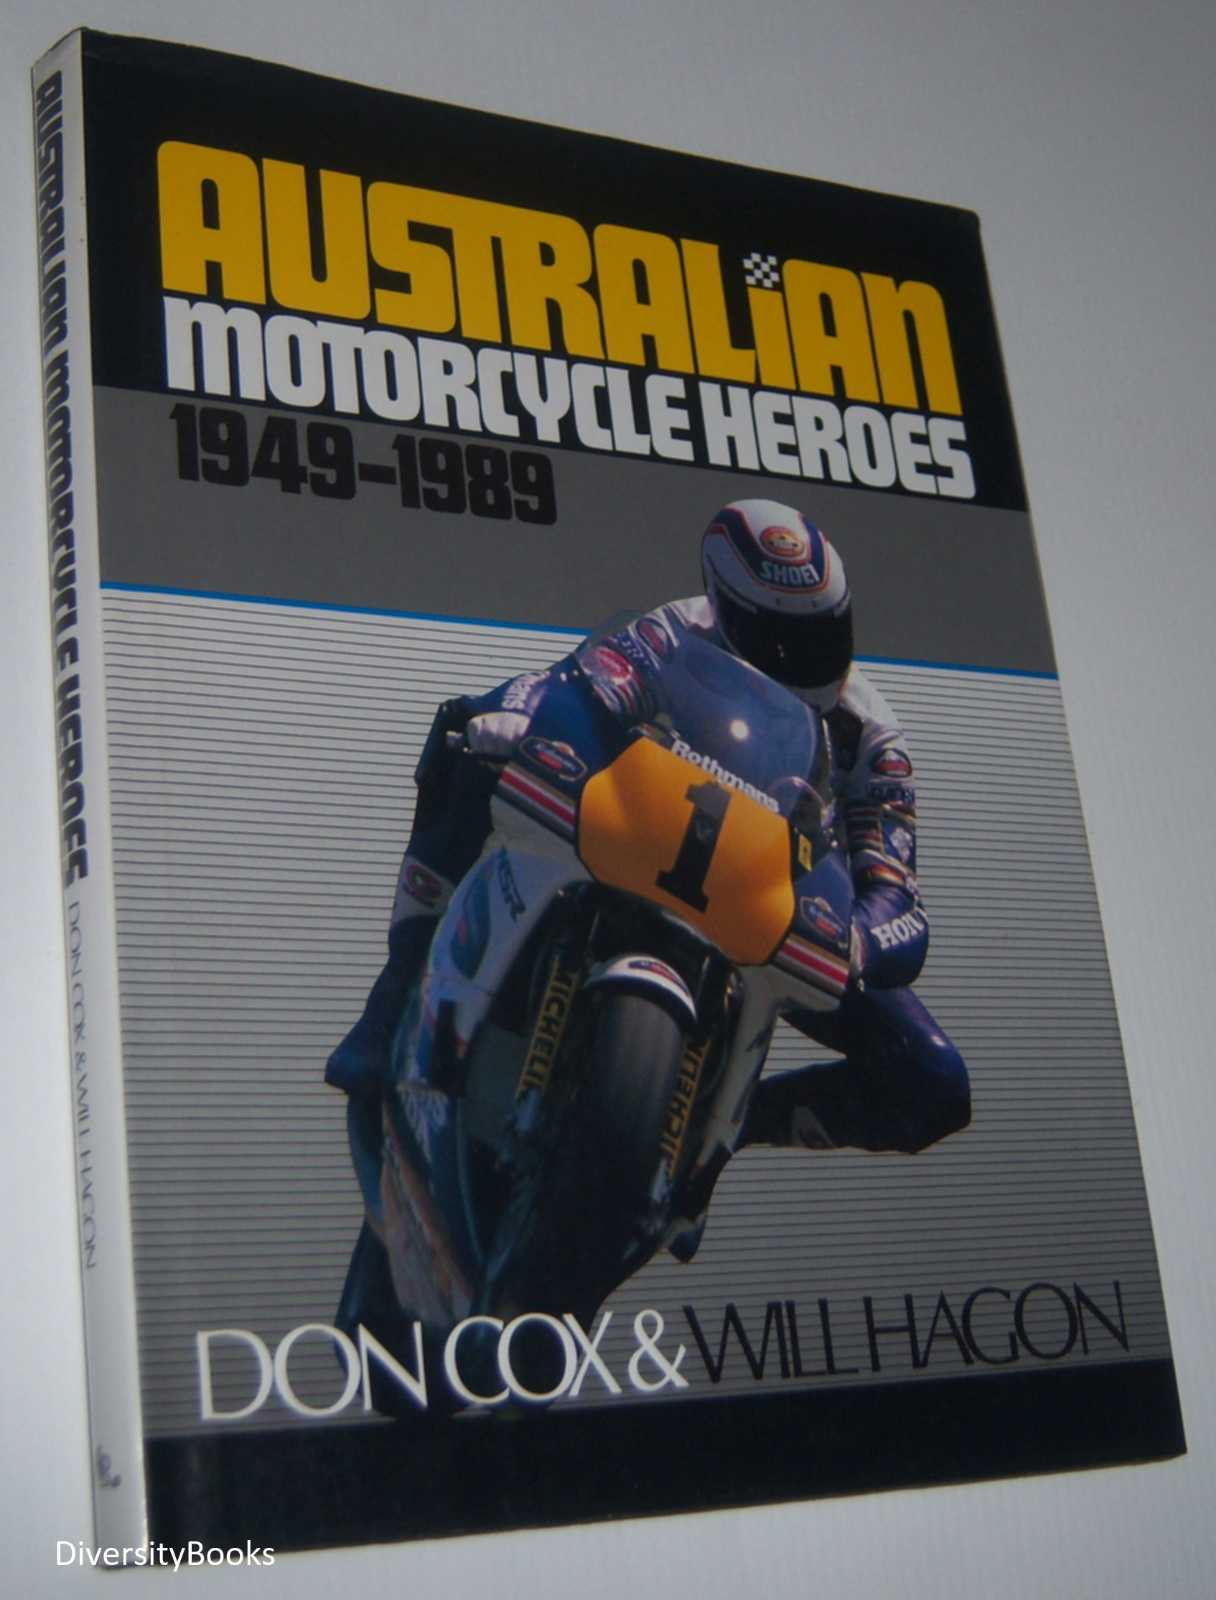 Image for AUSTRALIAN MOTORCYCLE HEROES 1949-1989